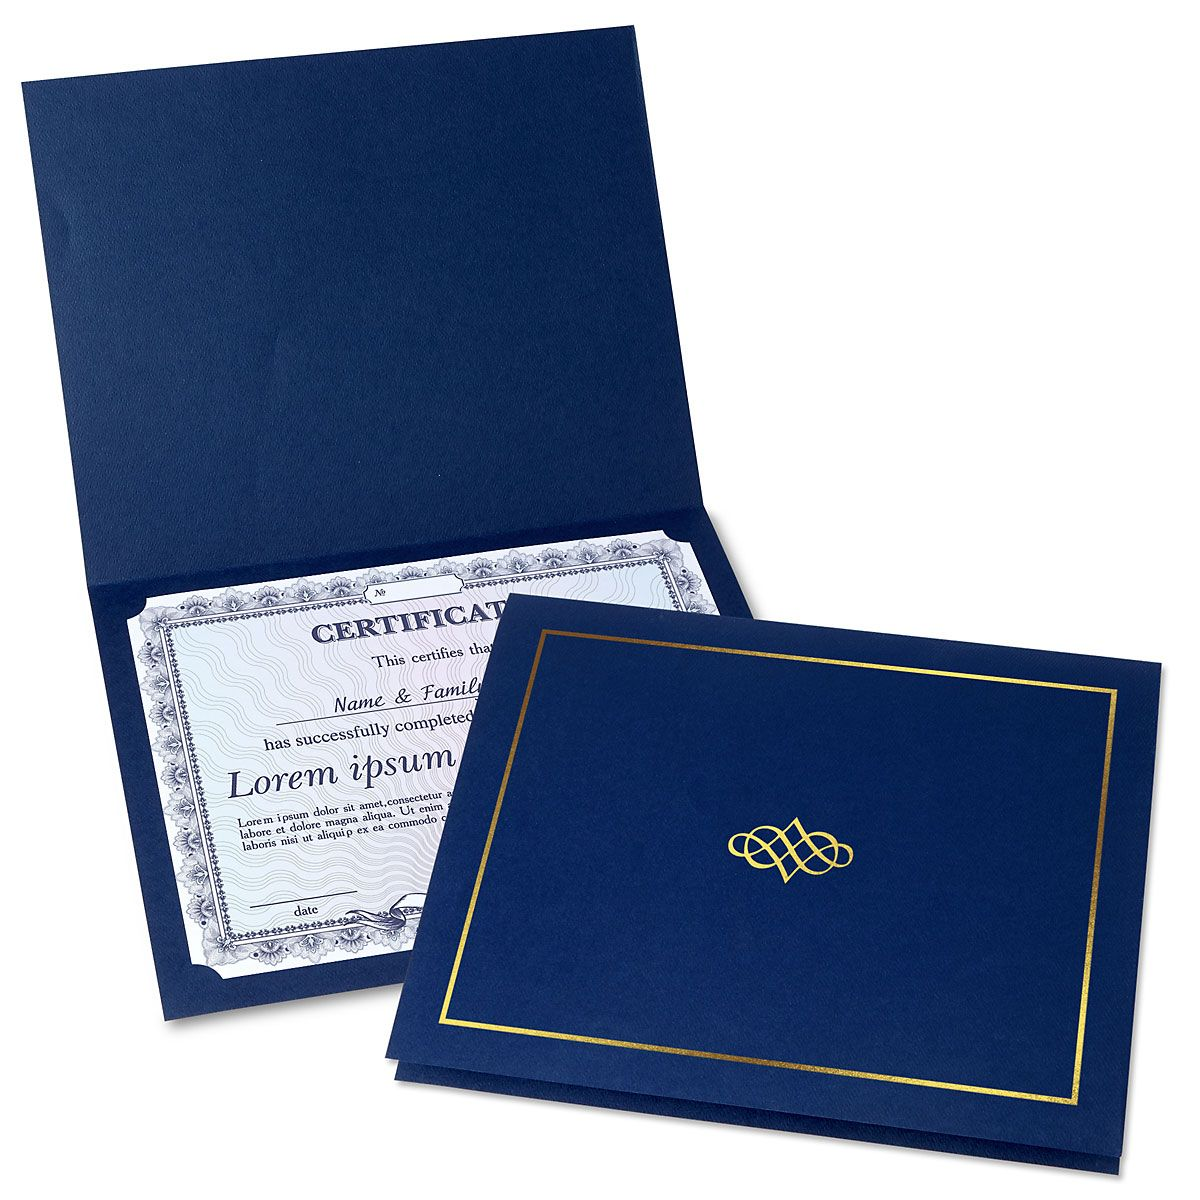 Ornate Blue Certificate Folder with Gold Border/Crest - Set of 50